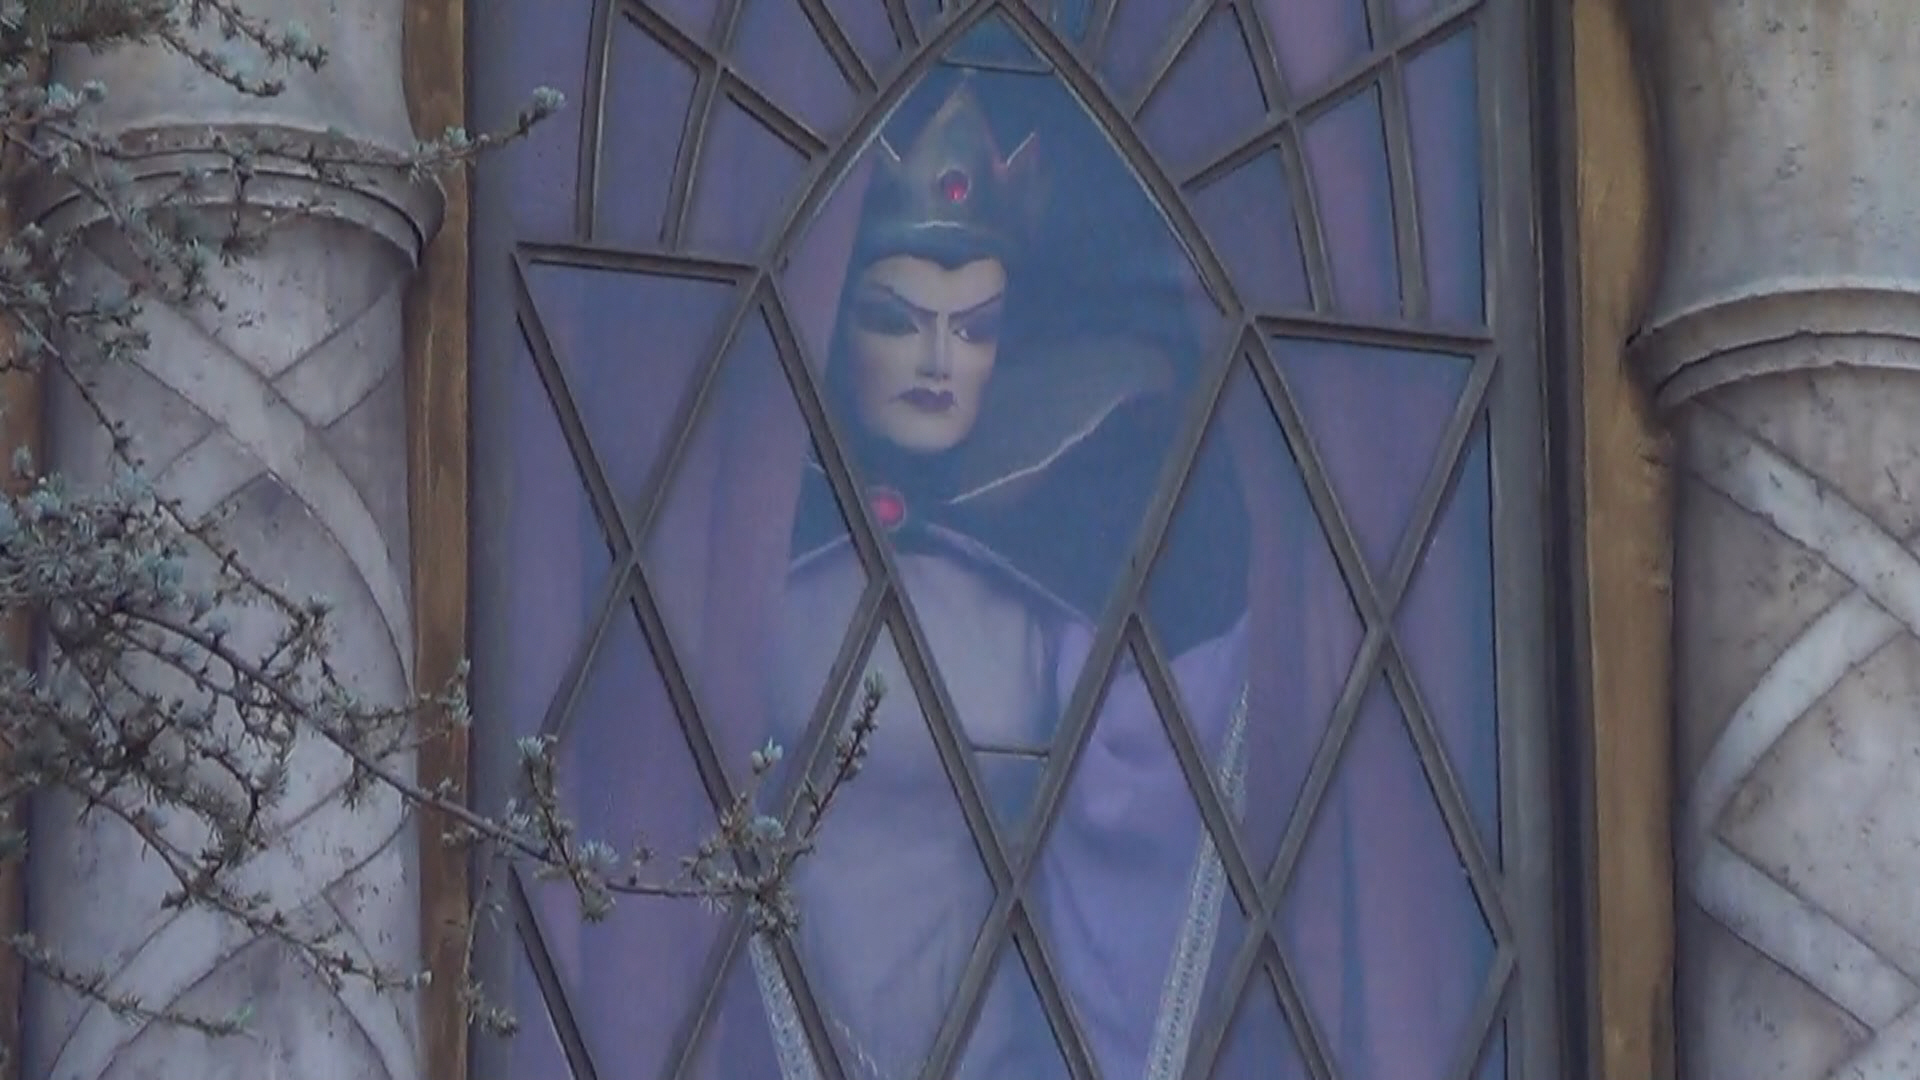 01 Disneyland - Maleficent peeking out from behind the drapes